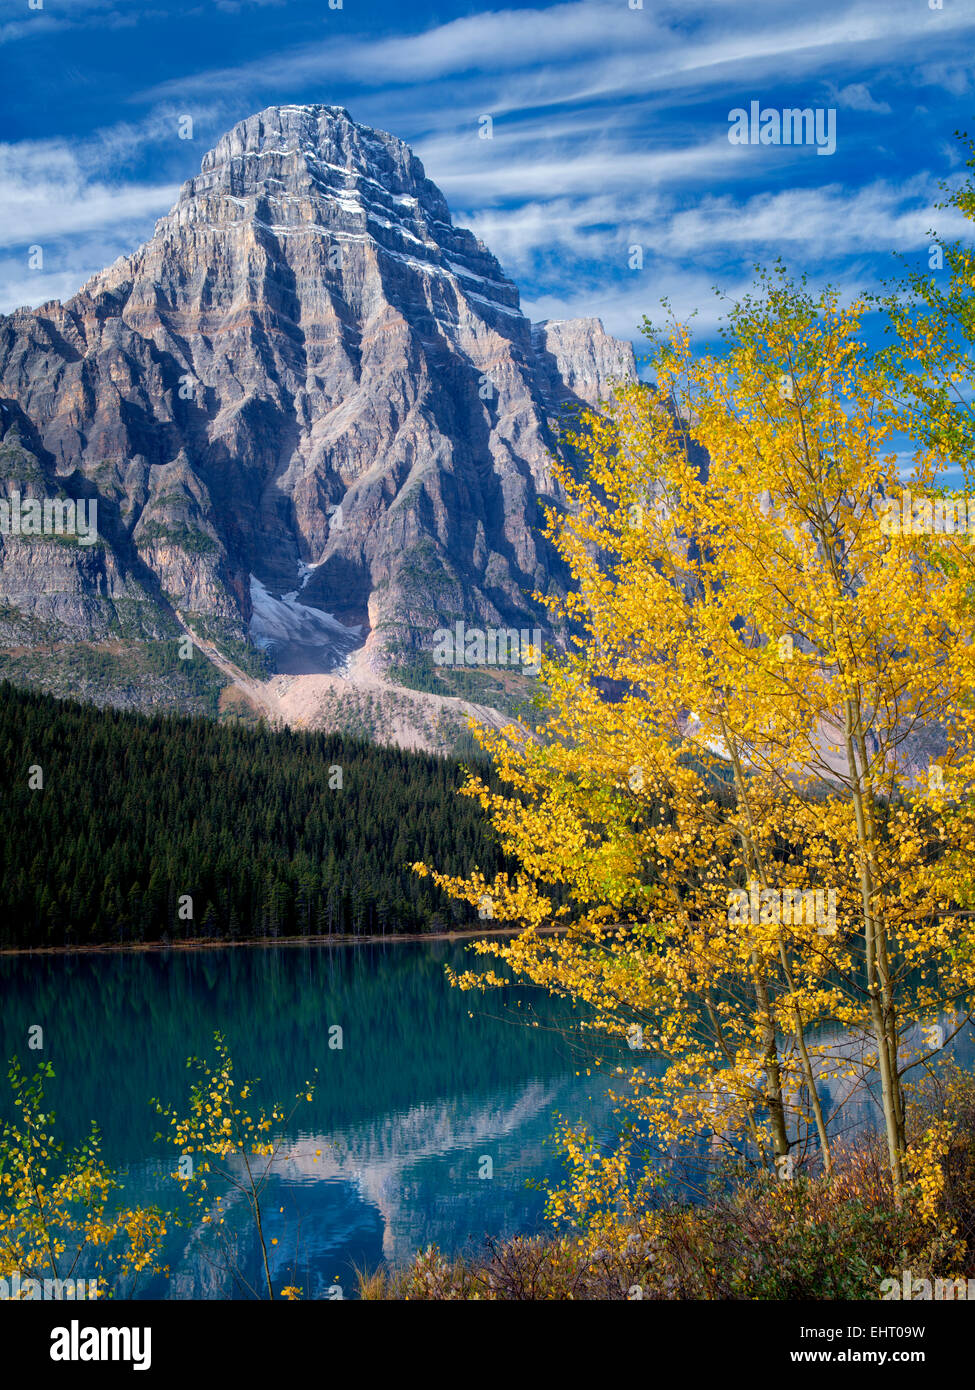 Waterfaowl Lakes and Mt. Chephren with fall colored aspens.  Banff National Park. Alberta, Canada - Stock Image